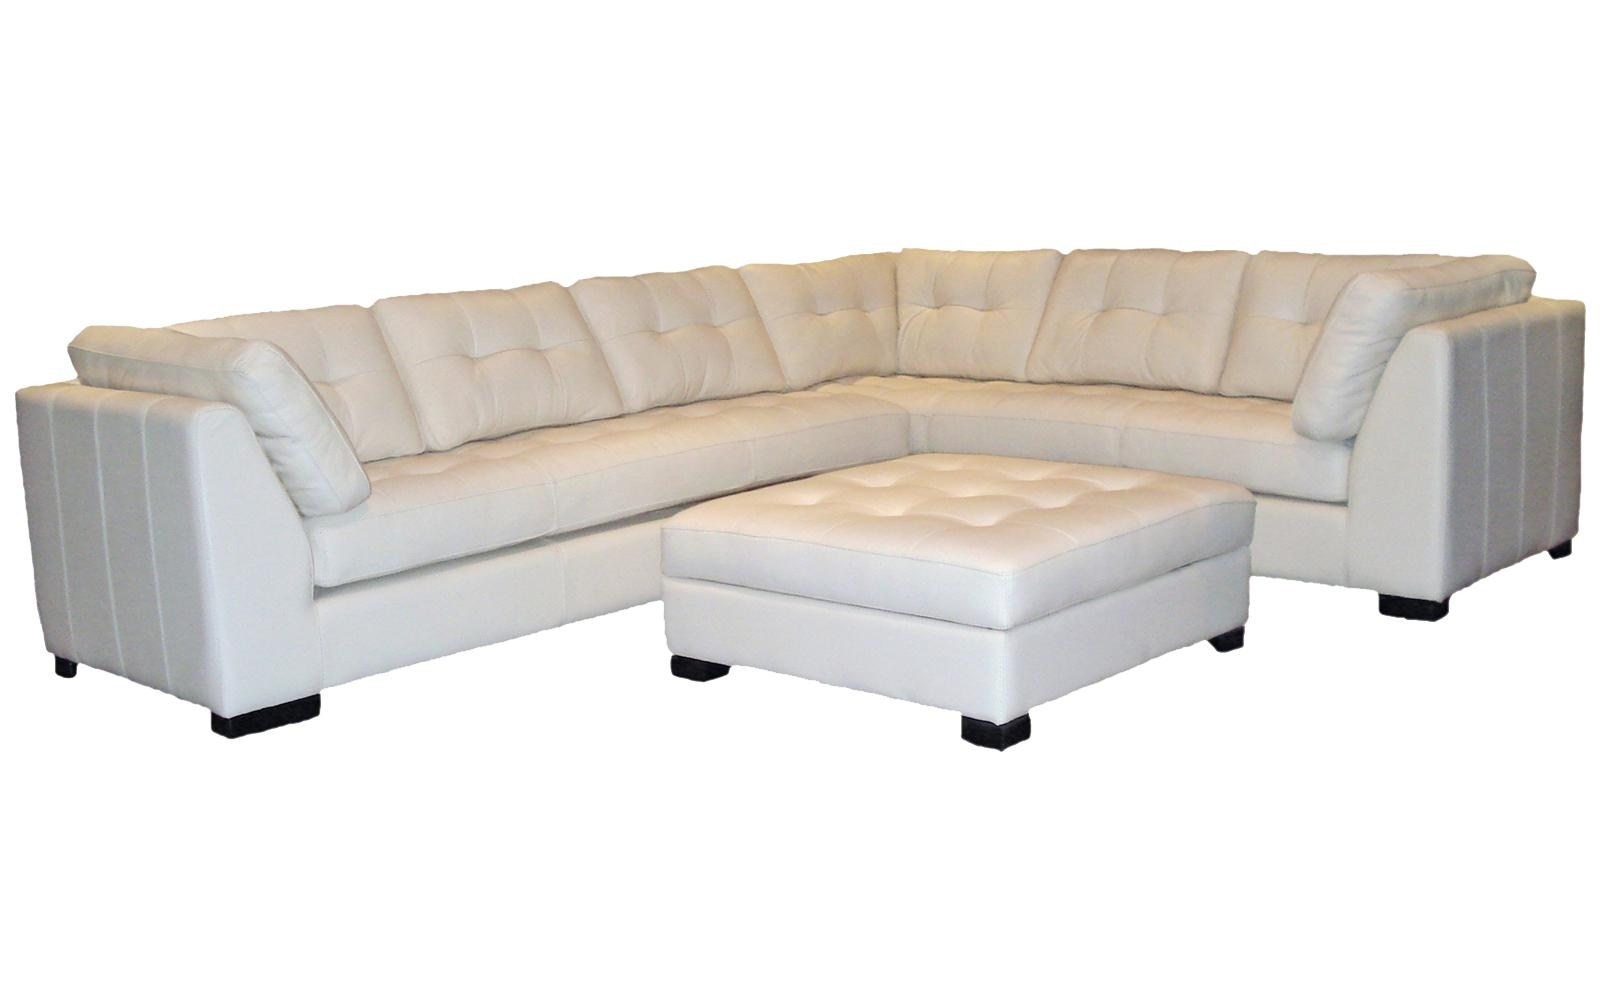 Newport Sofa Available – Omnia Leather inside Newport Sofas